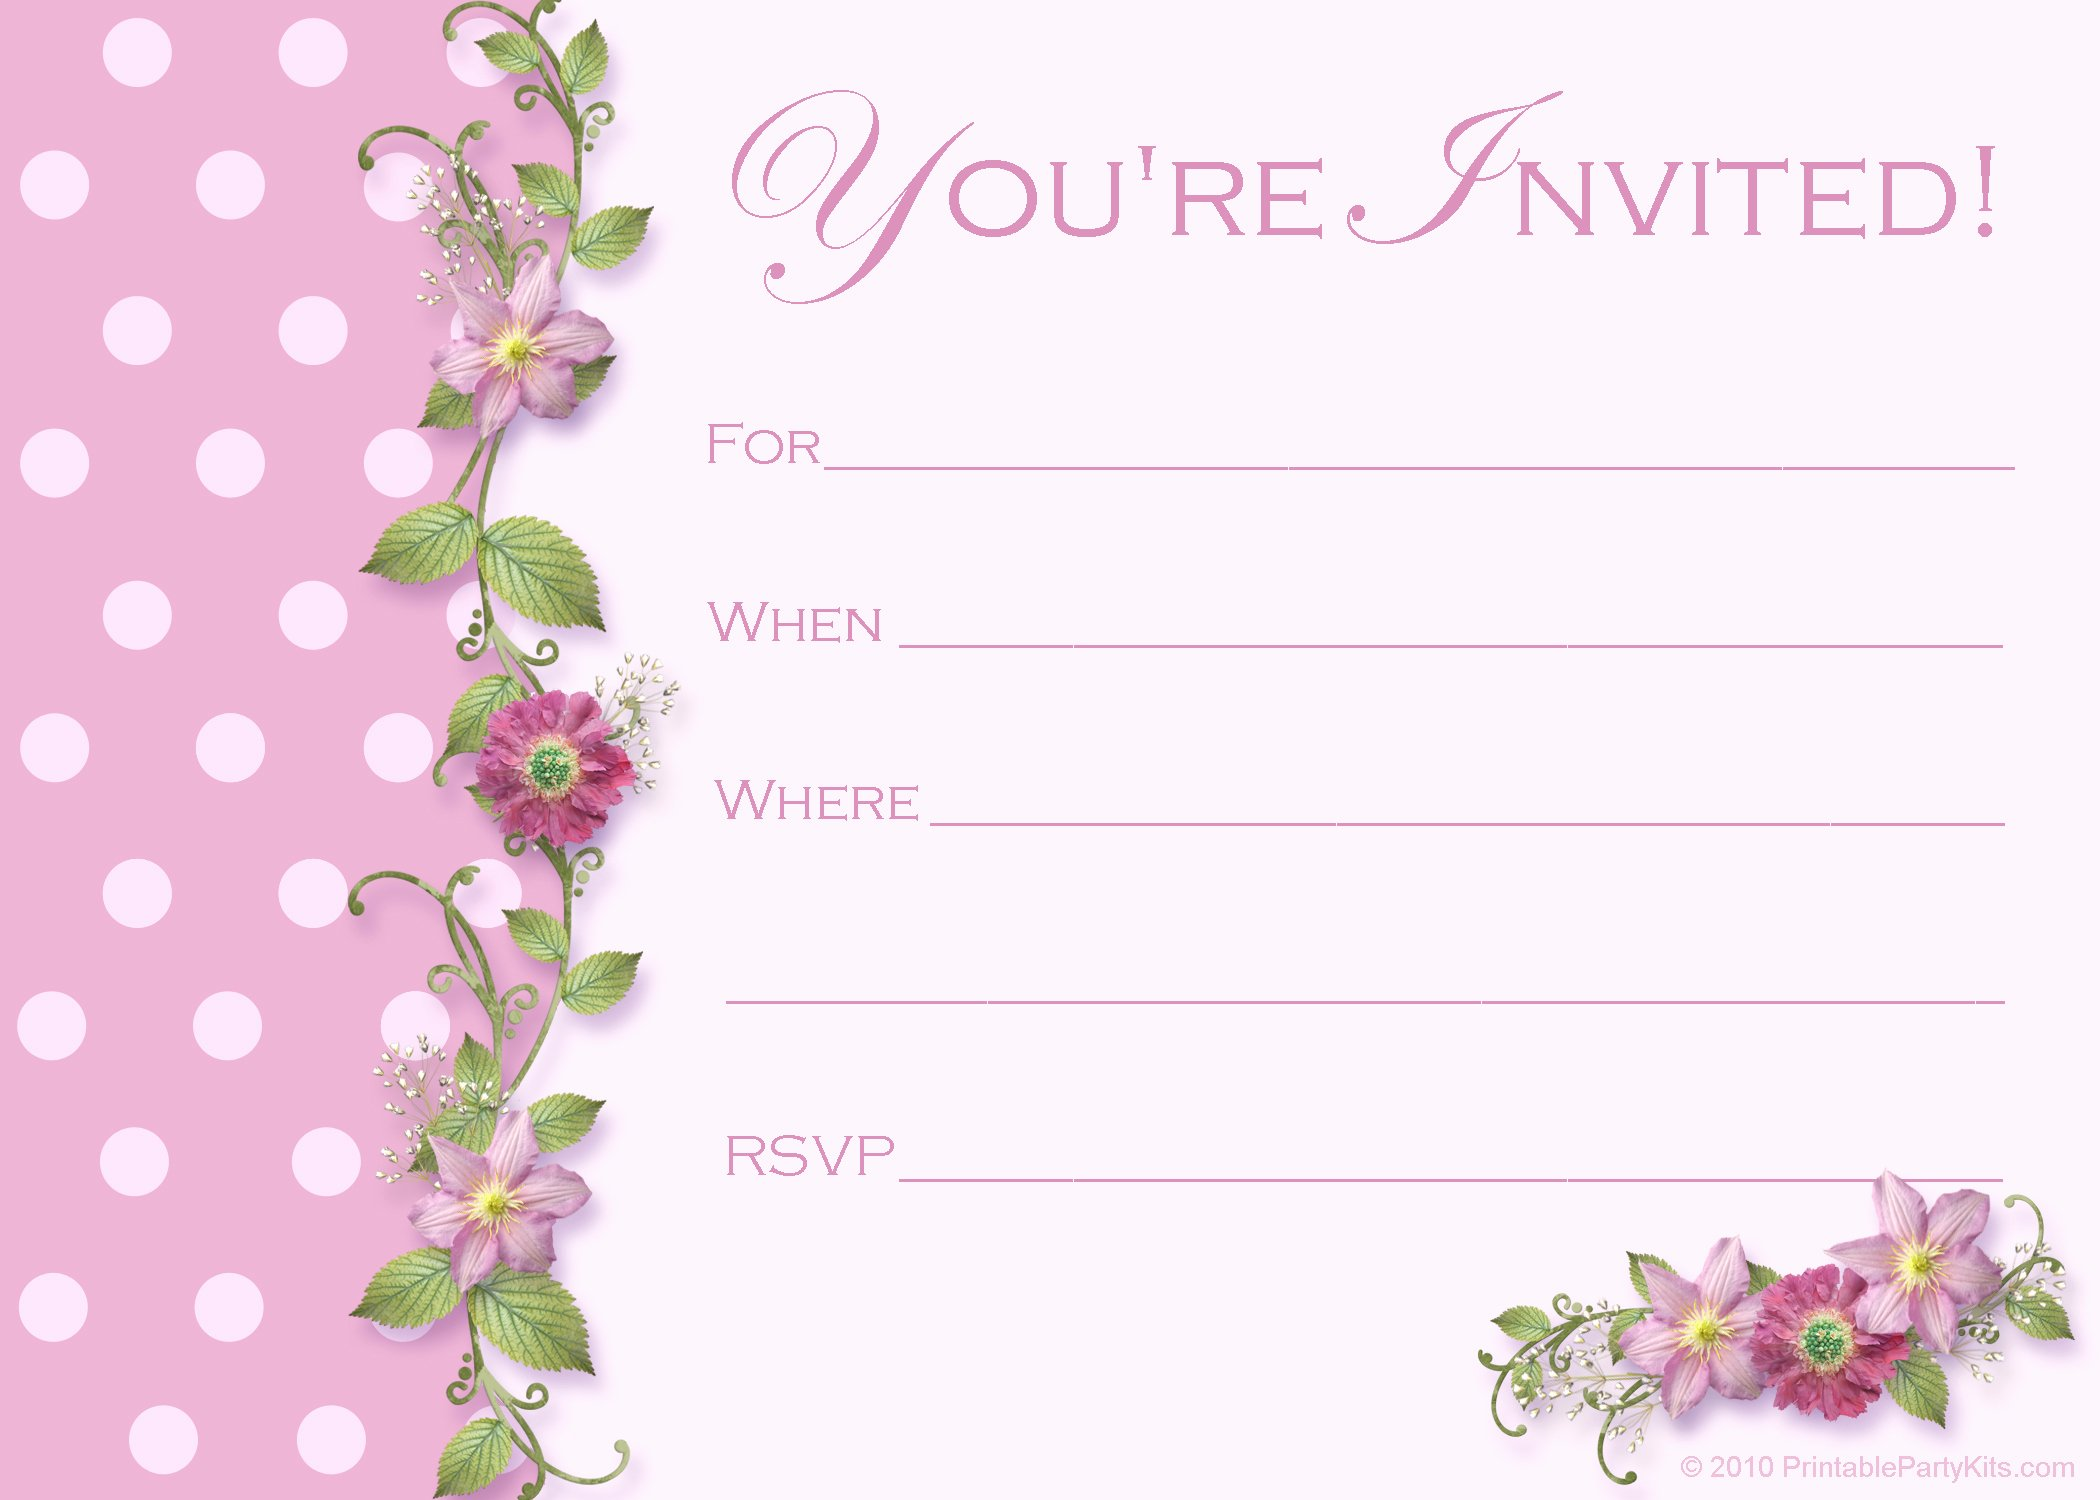 Printable Invitations for Free Awesome Free Sweet 16 Birthday Invitations – Free Printable